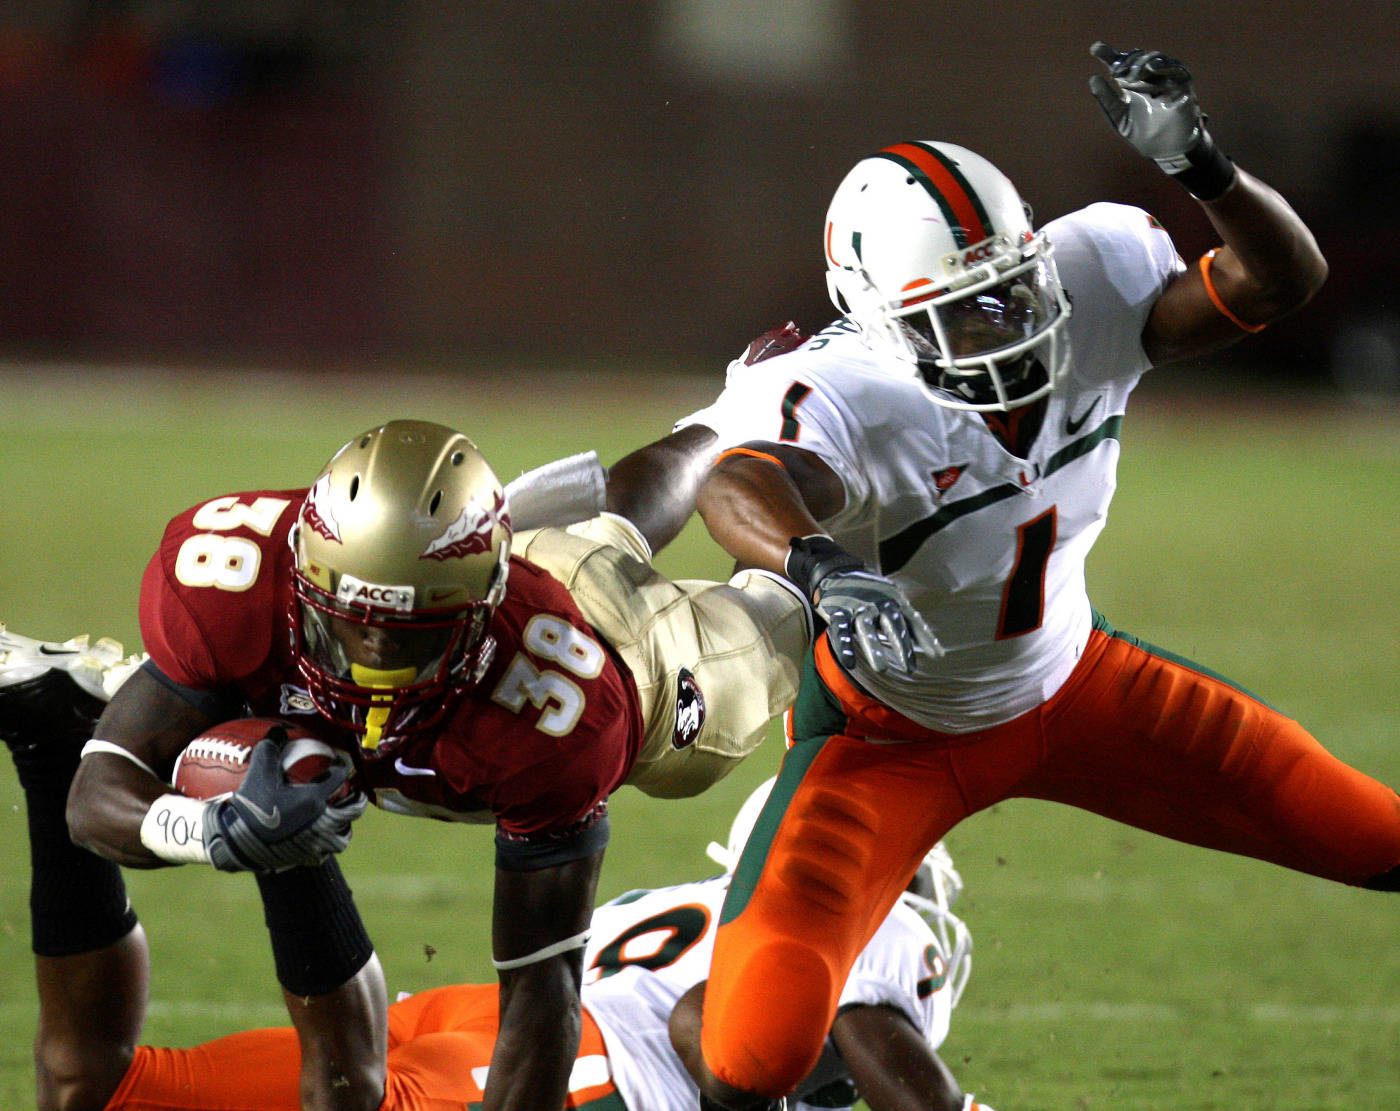 Florida State's Jermaine Thomas, left, dives for first-quarter yardage as Miami's Brandon Harris makes the tackle during an NCAA college football game Monday, Sept. 7, 2009, in Tallahassee, Fla. (AP Photo/Phil Coale)